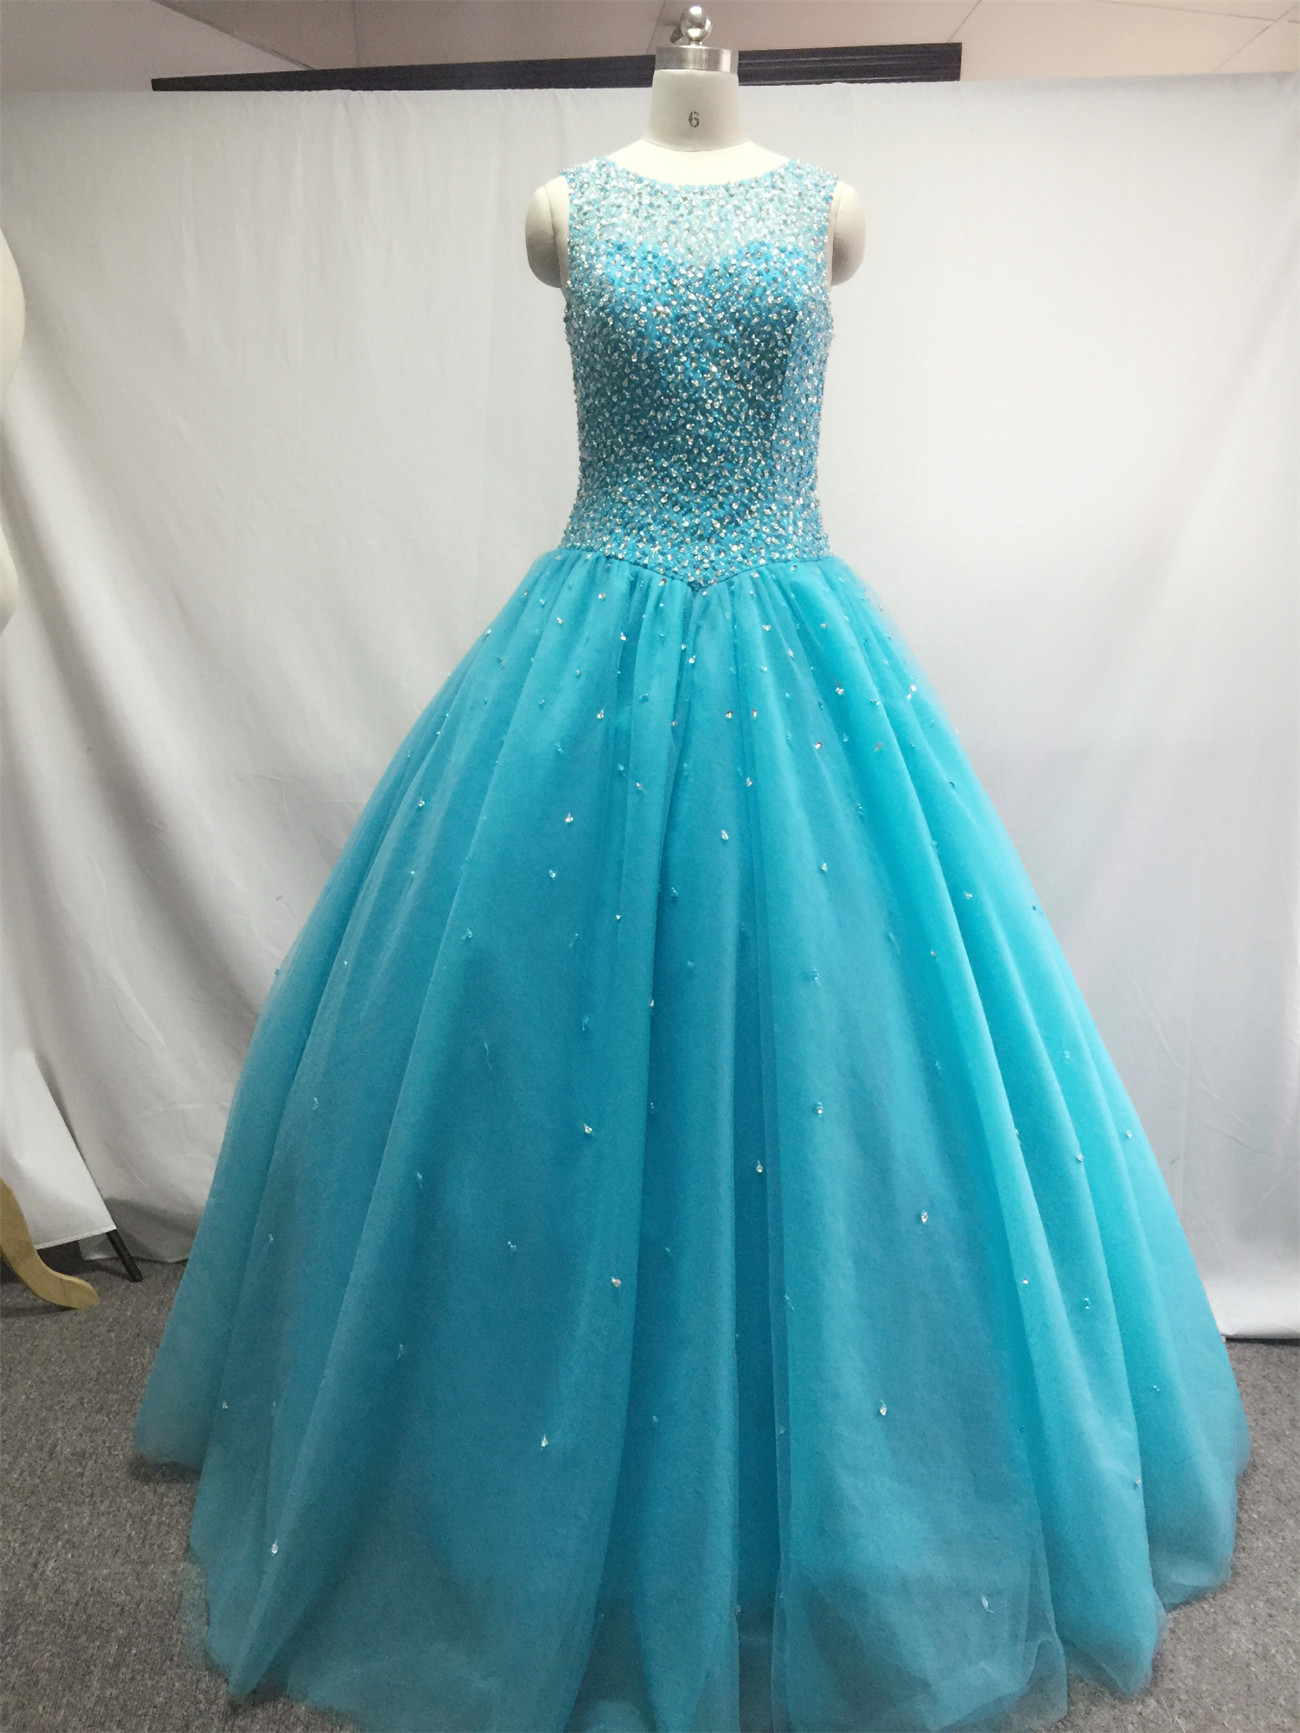 New Navy Blue Quinceanera Dresses 2017 With Beaded Pearl ...